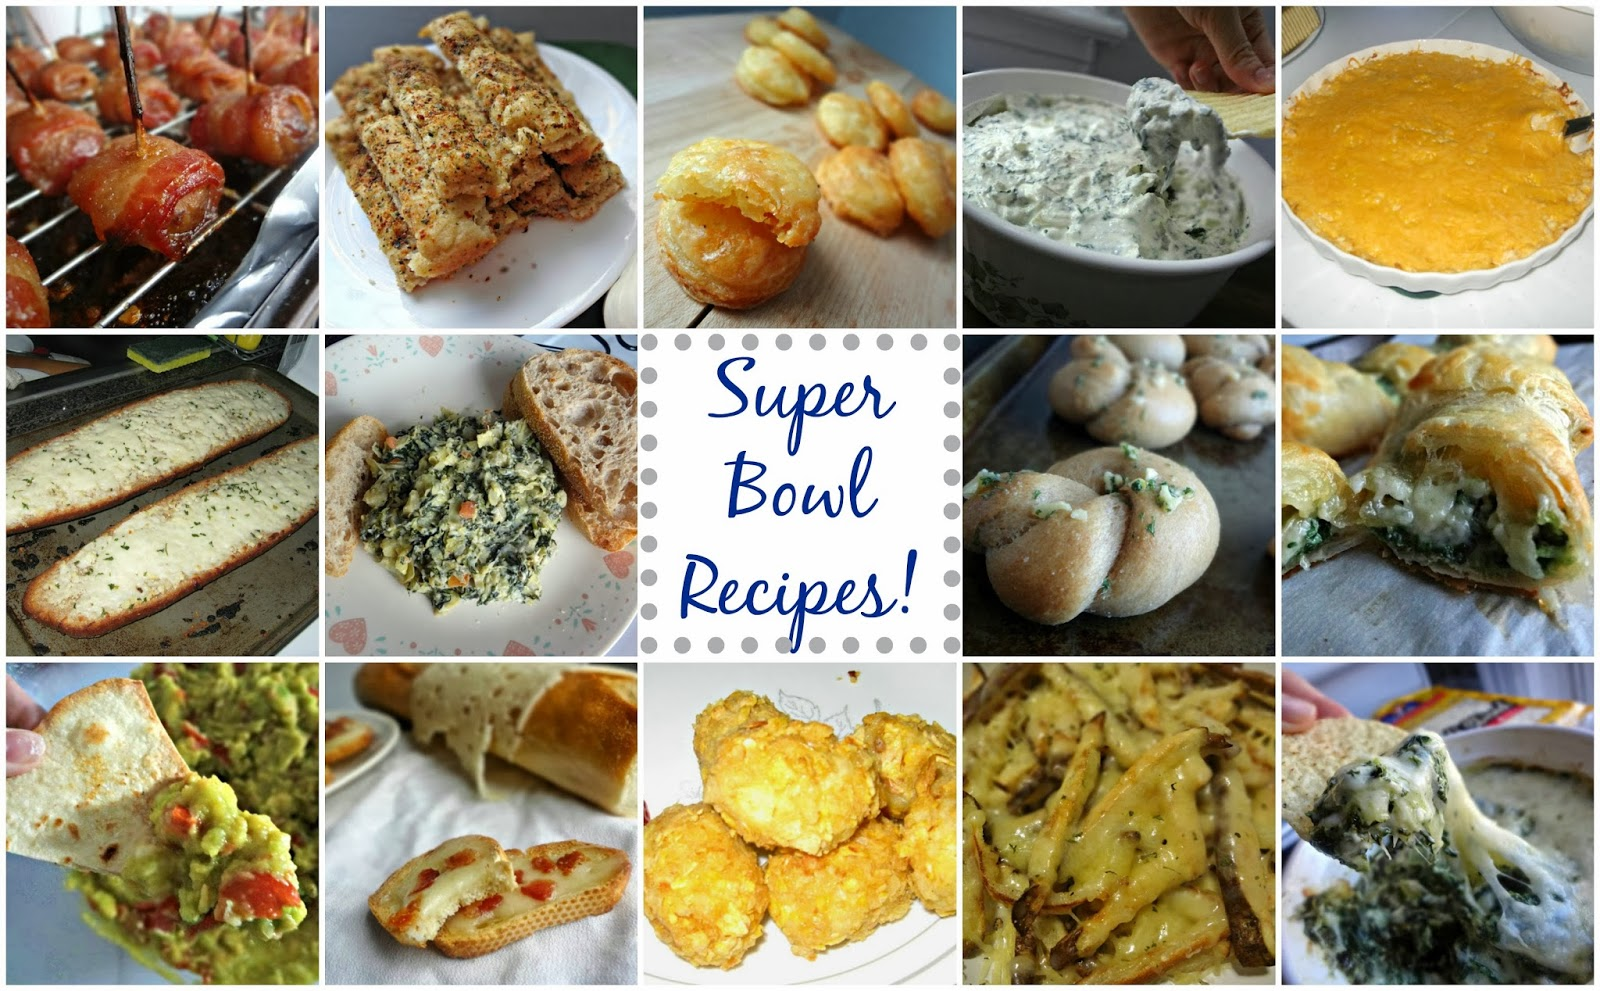 Super Bowl Recipe Ideas